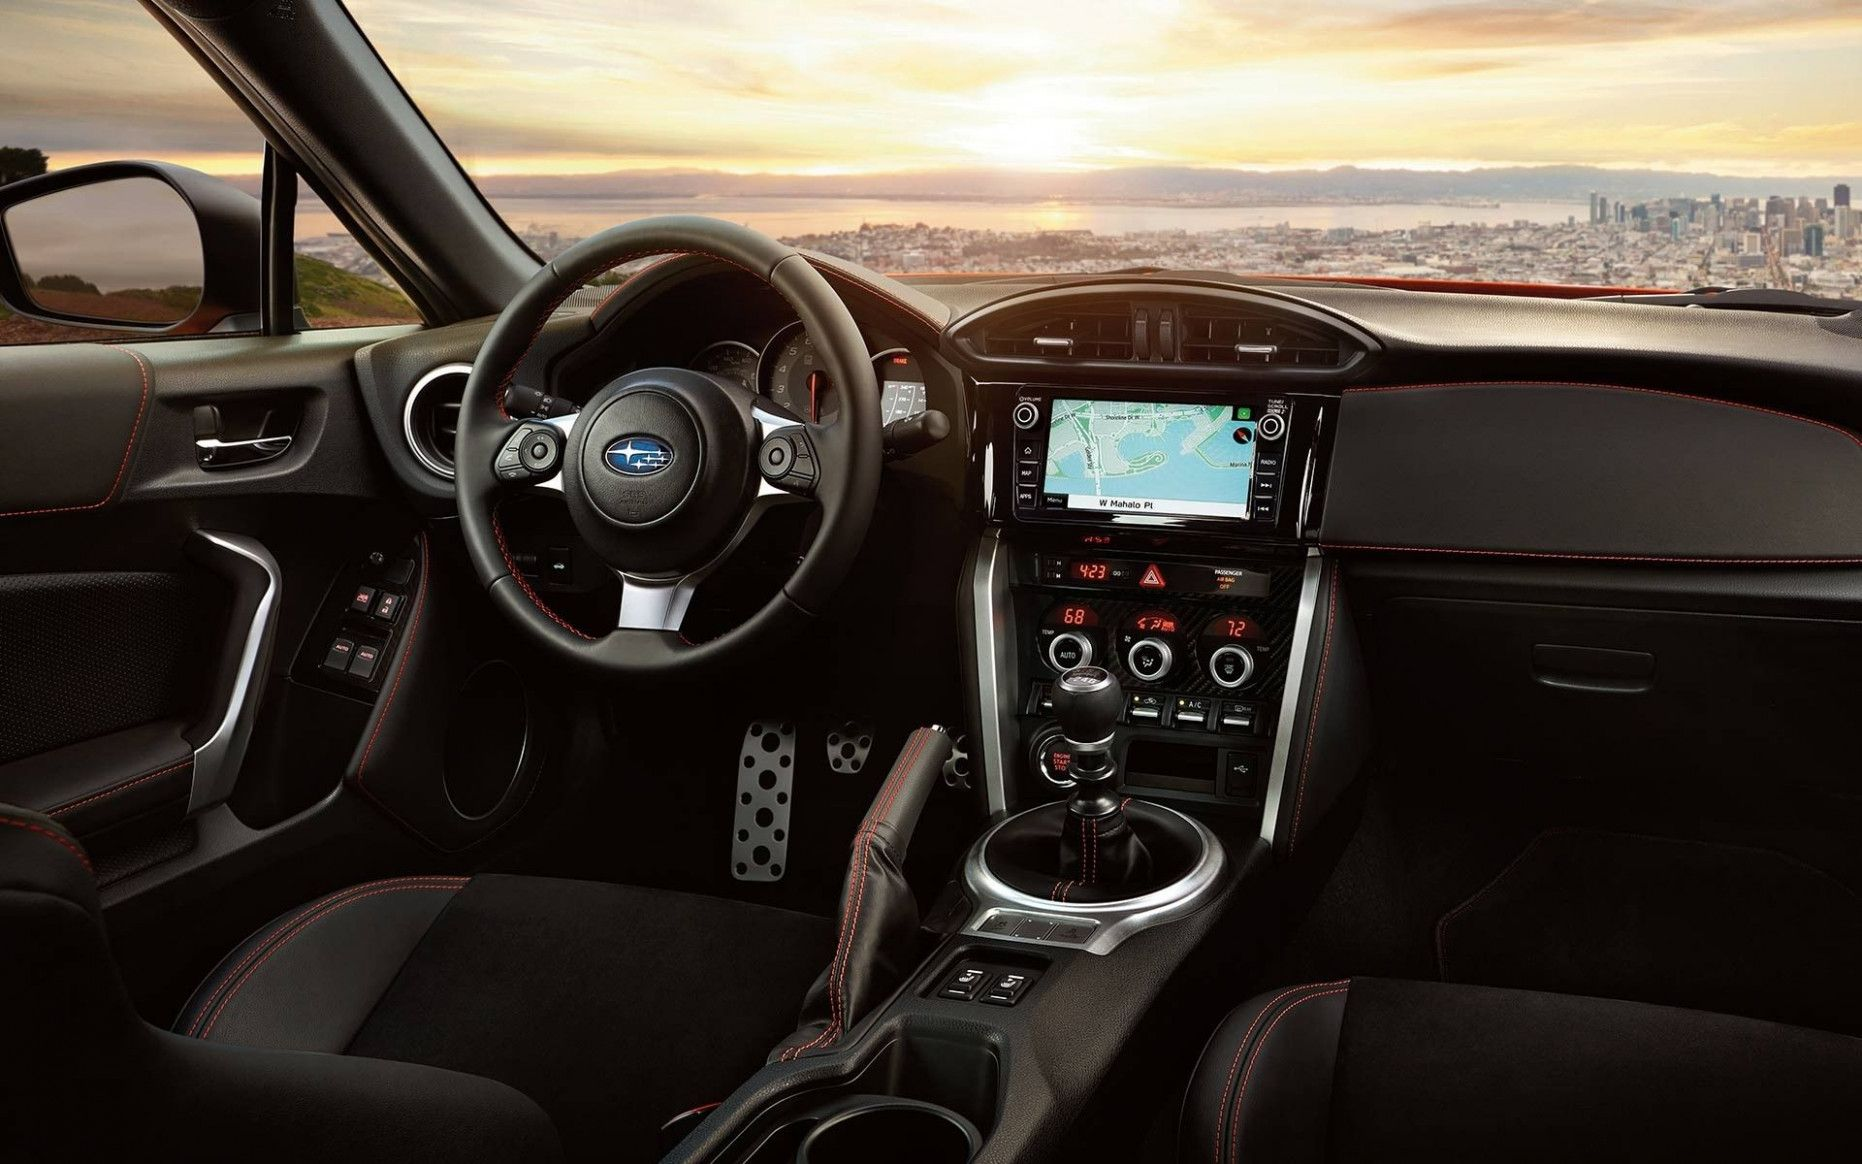 7 Picture Subaru Brz 2020 Interior The Brz Includes A Accepted Affection Set Than Ability Be Accepted In A Sports Car At In 2020 Subaru Brz Subaru Subaru Brz Interior